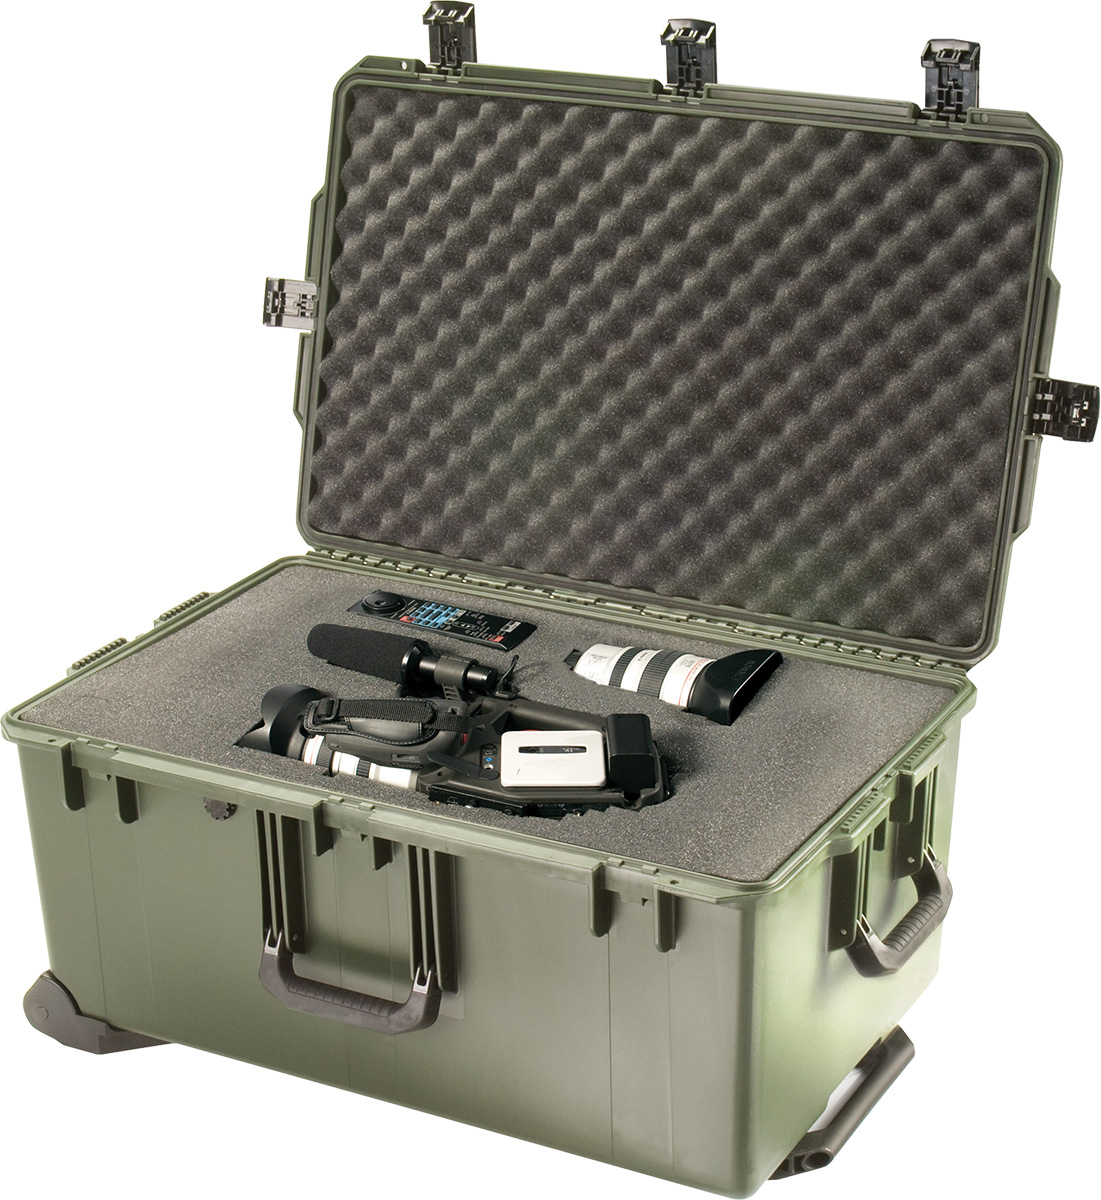 pelican im2975 camera equipment case